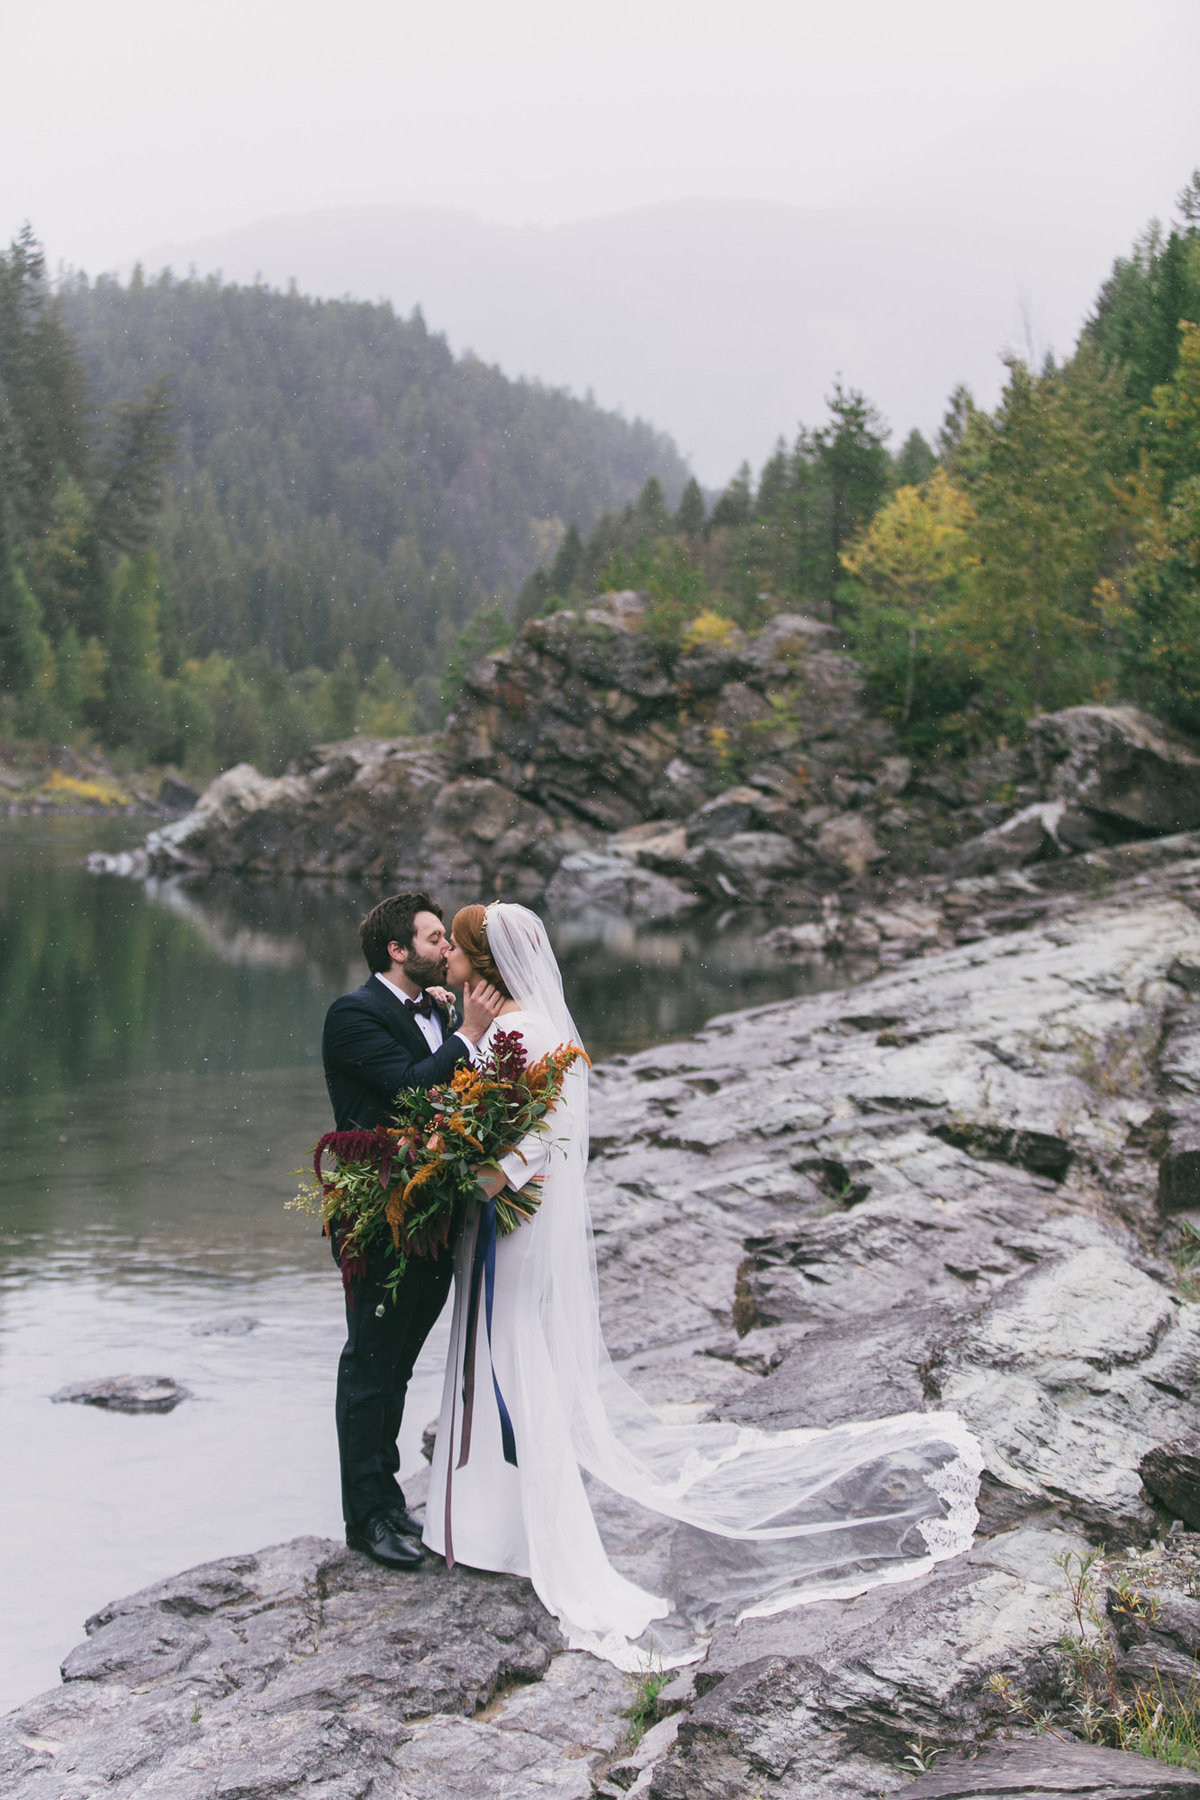 Jennifer_Mooney_Photography_Abbey_Stephen_Fall_Winter_Glacier_Park_Elopement-44